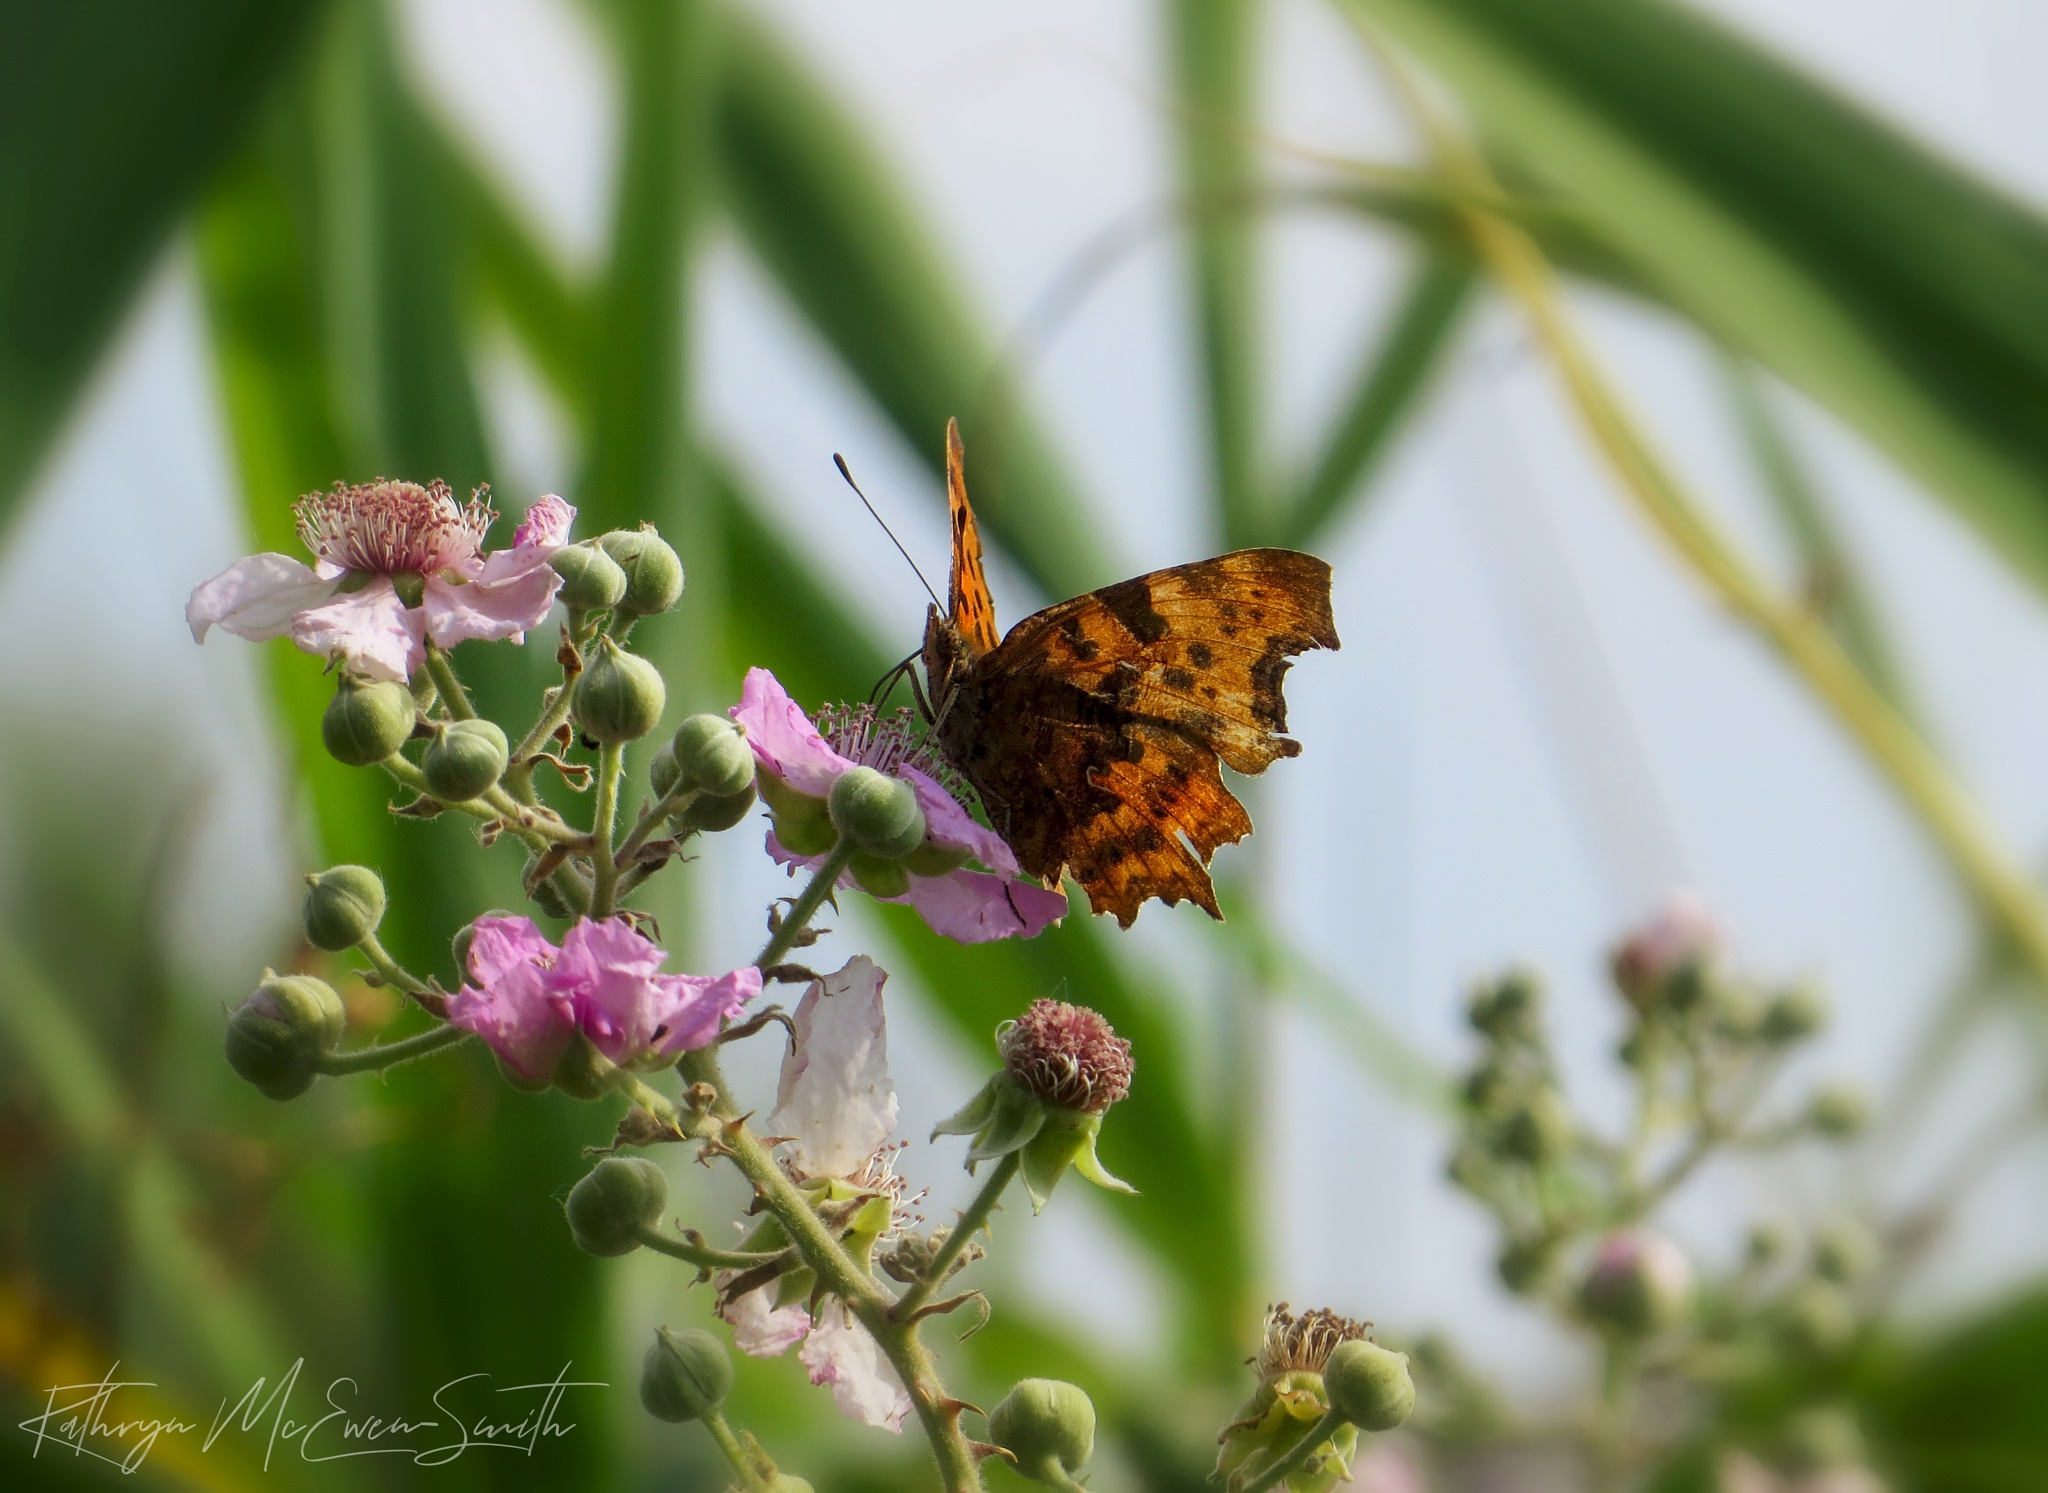 Butterfly feeding on wild pink flowers 2 by Kathryn McEwen-Smith